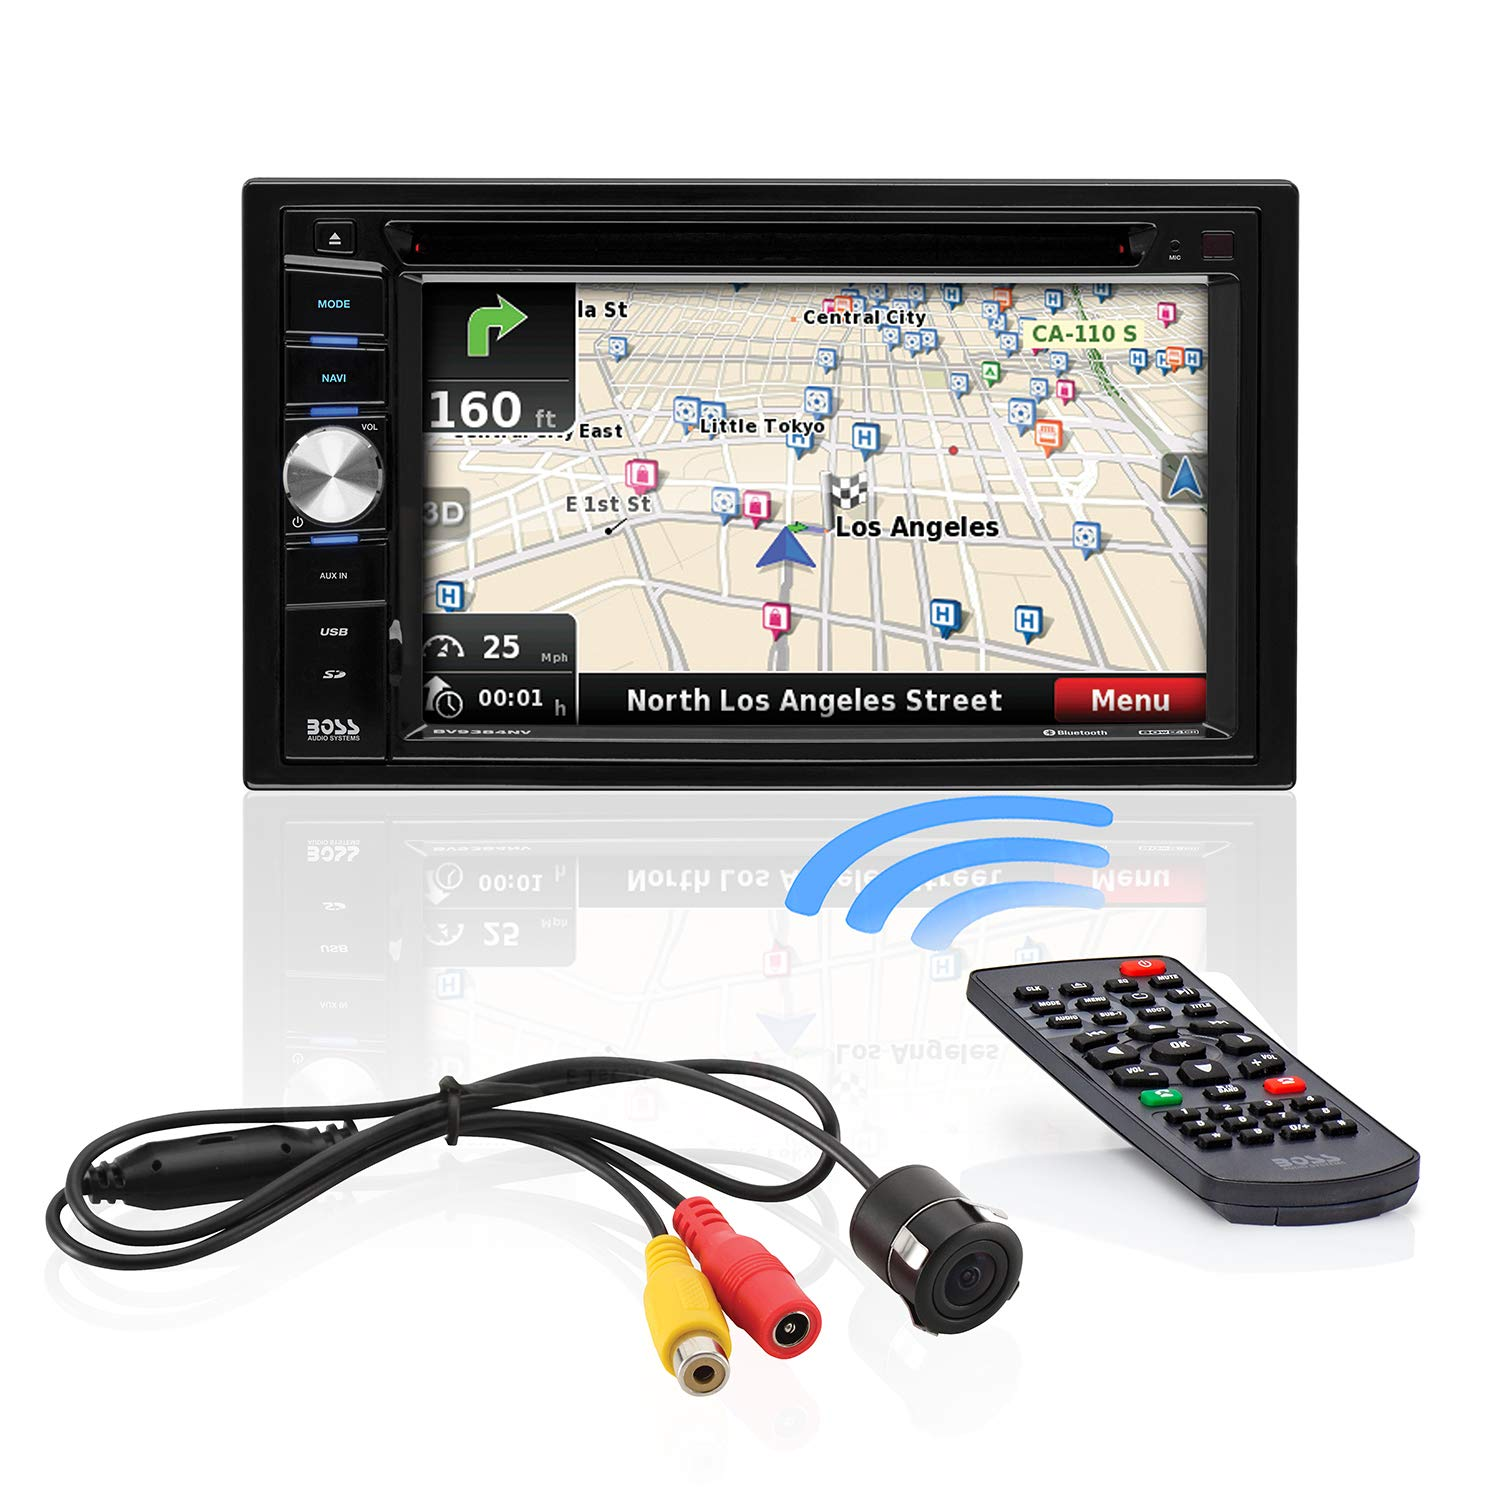 BOSS Audio Systems BVNV9384RC Car GPS Navigation and DVD Player - Double Din, Bluetooth Audio and Calling, 6.2 Inch LCD Touchscreen Monitor, MP3 CD DVD USB SD, Aux-in, AM FM Radio Receiver by BOSS Audio Systems